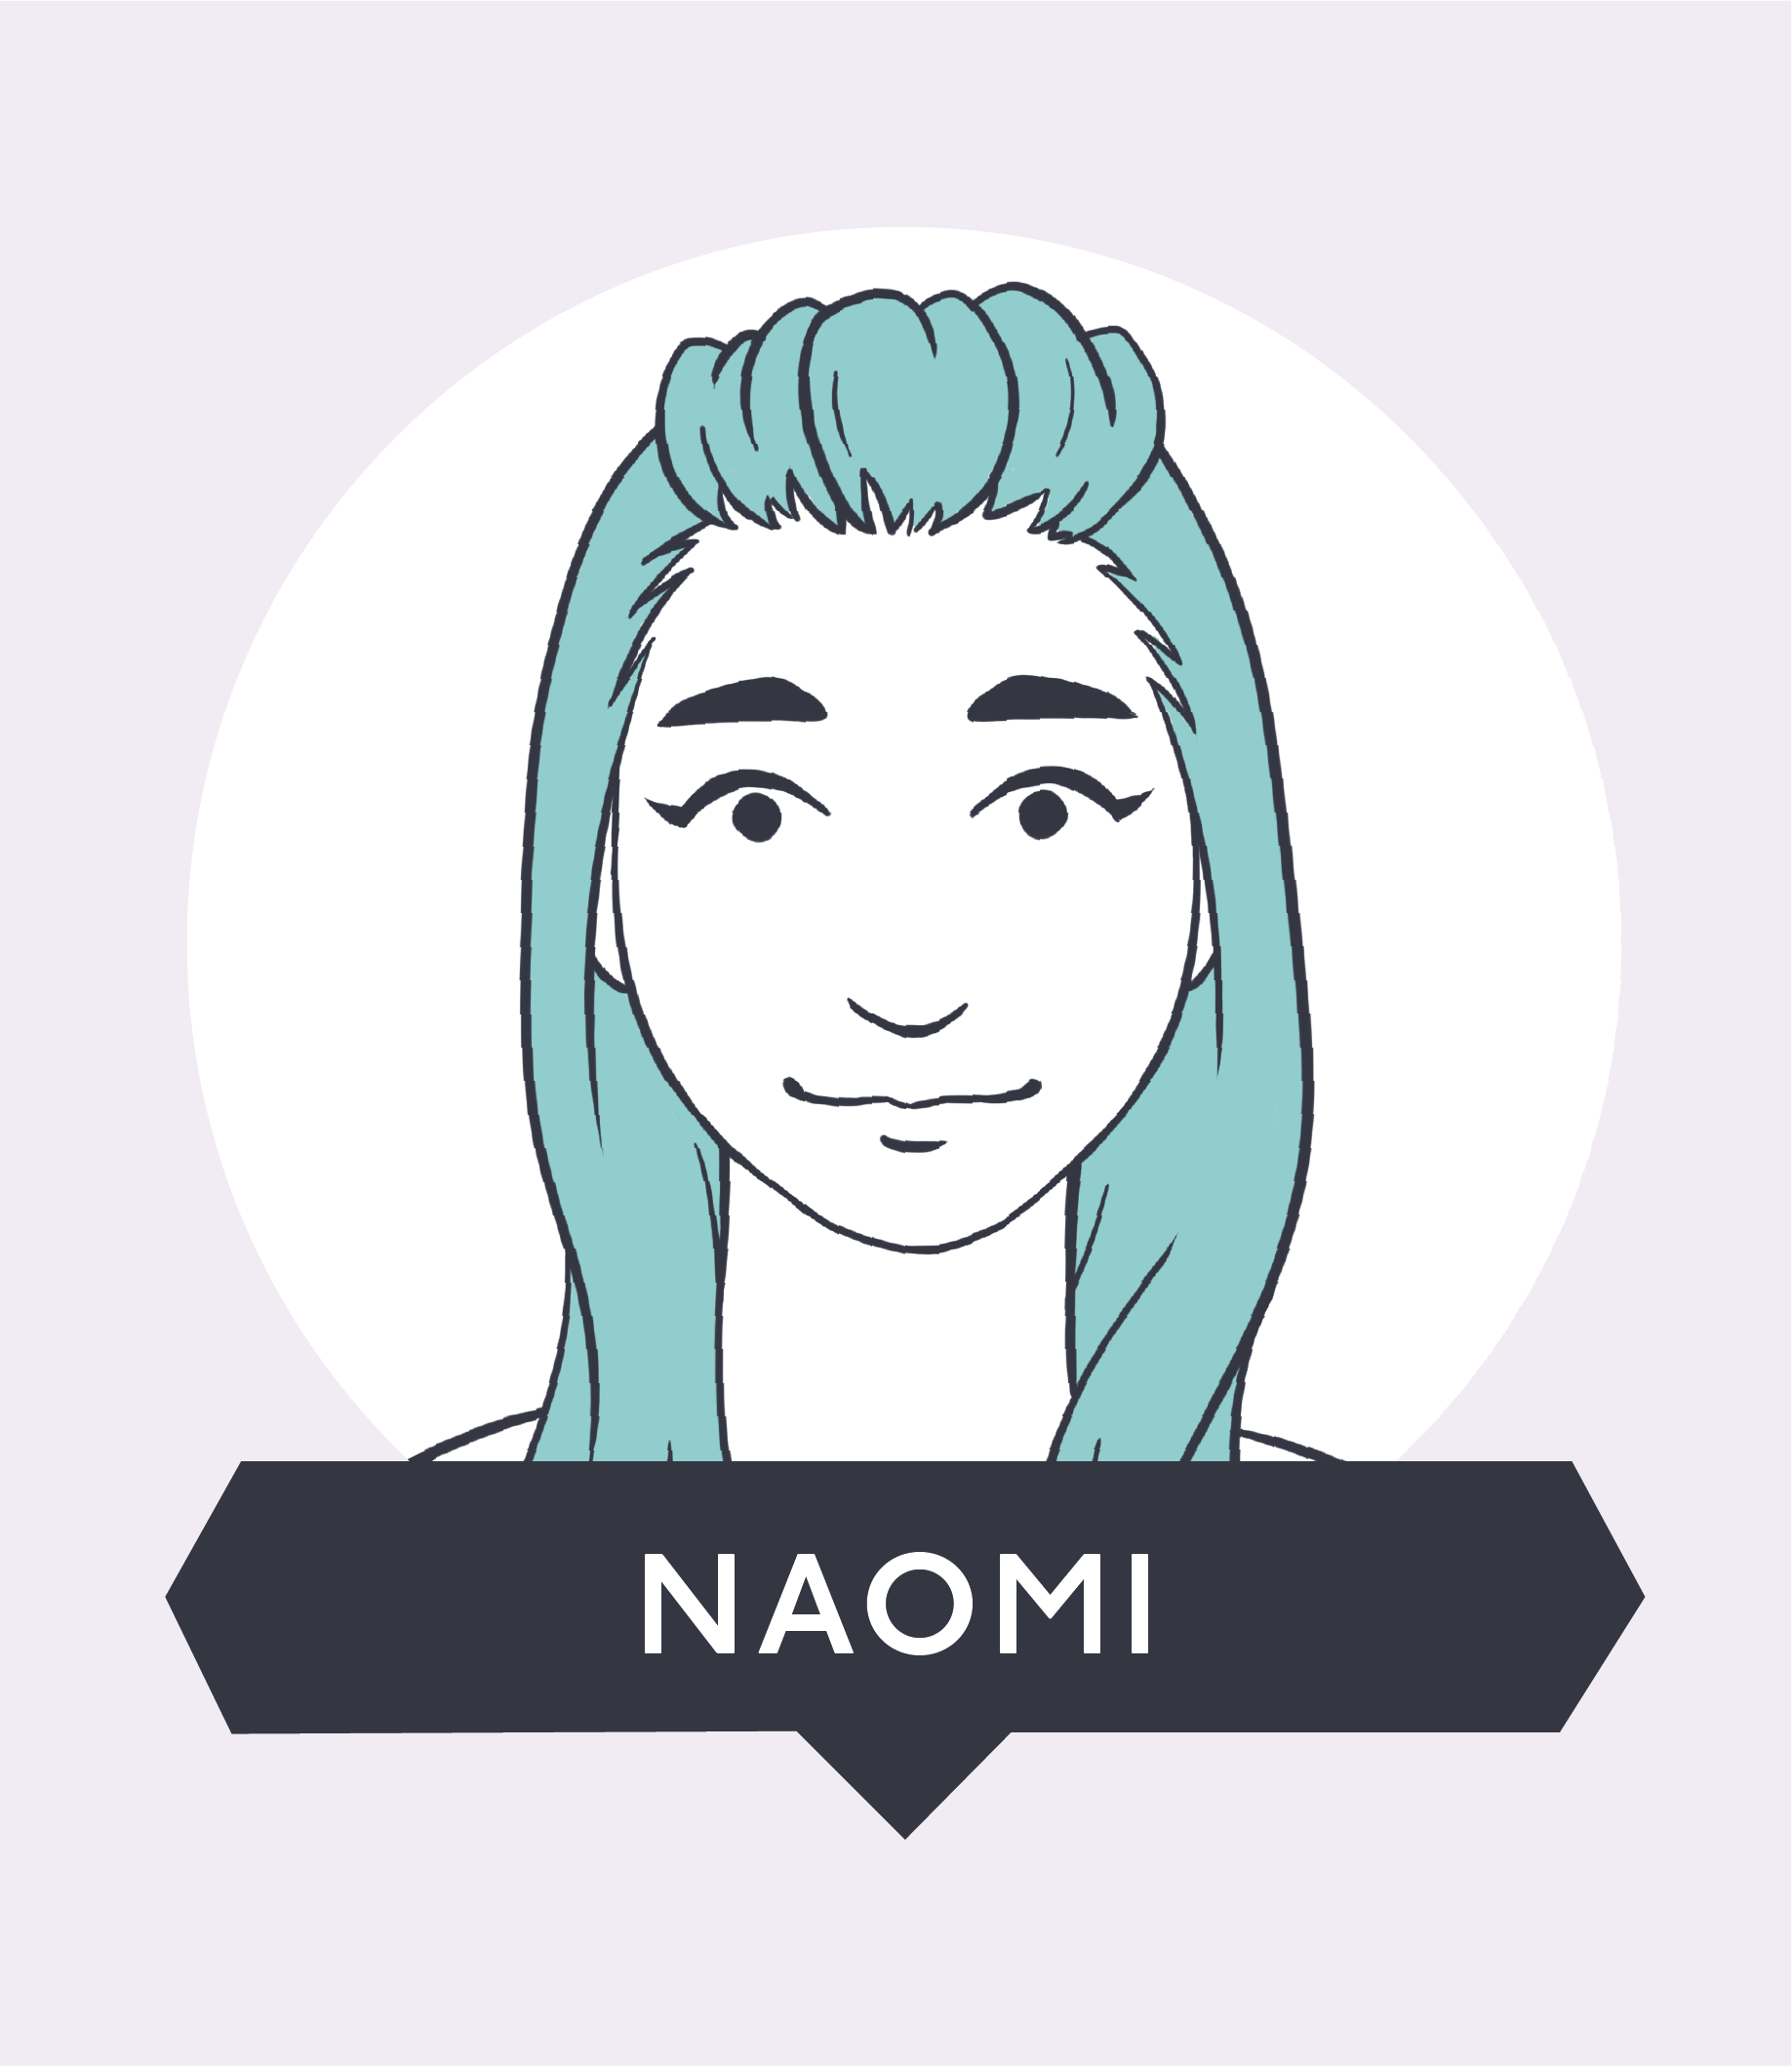 Naomi profile picture